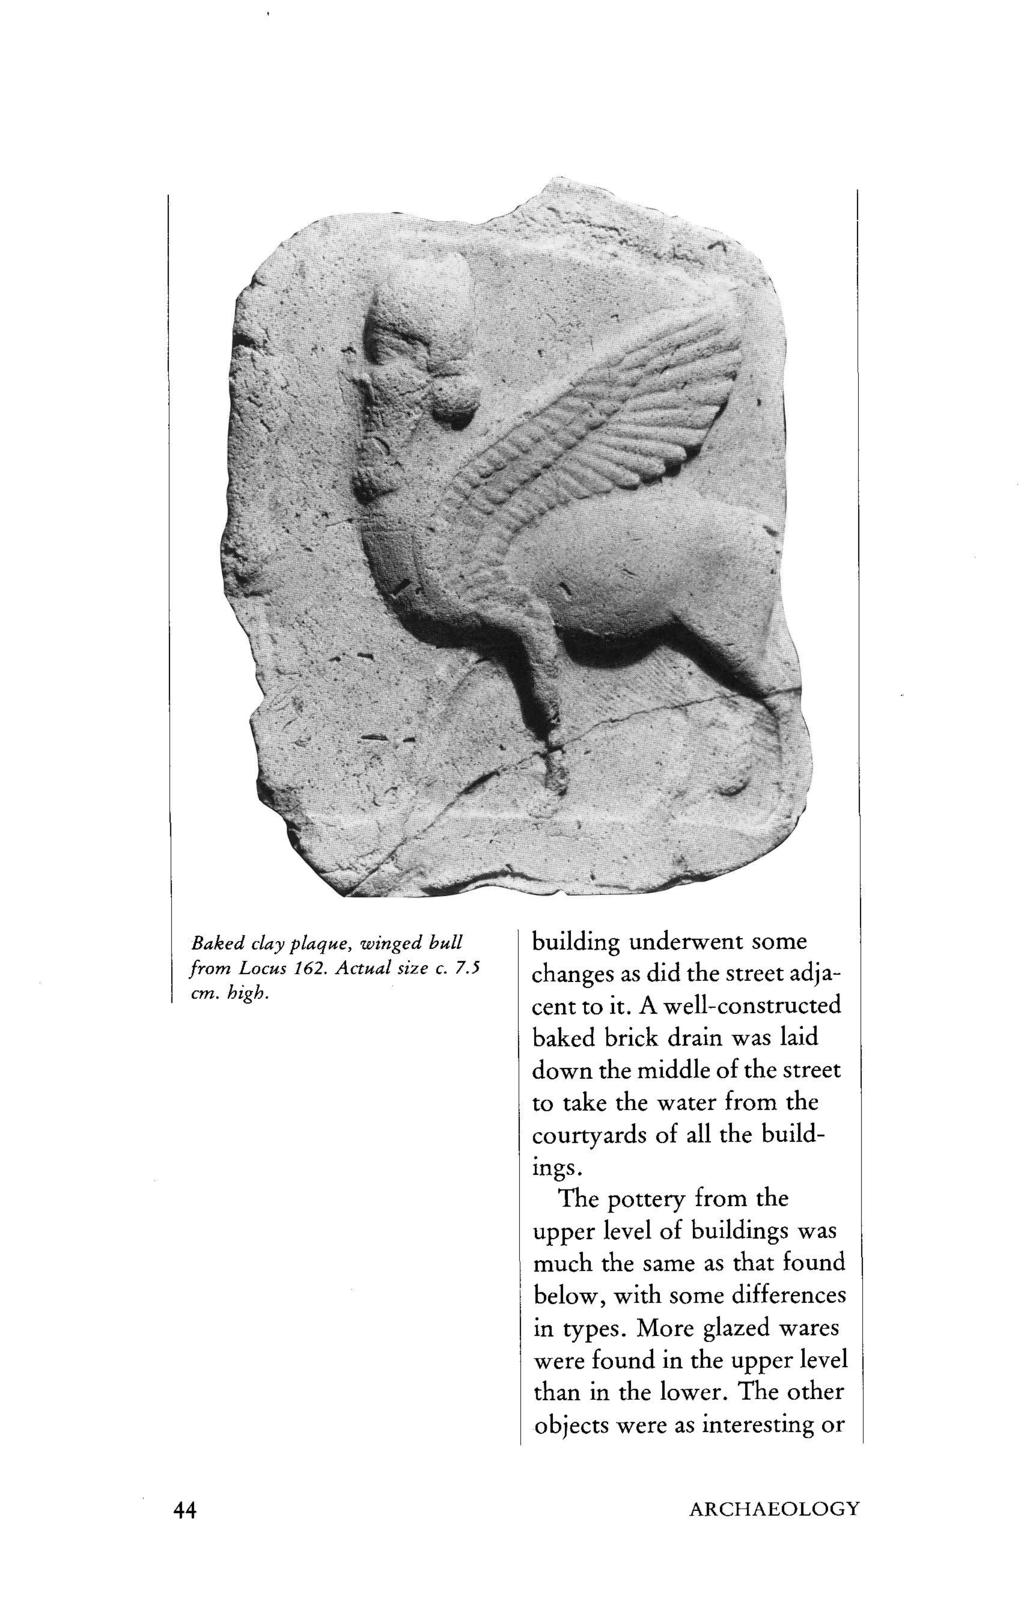 Baked clay plaque, winged bull from Locus 162. Actual size c. 7.5 cm. high. building underwent some changes as did the street adjacent to it.